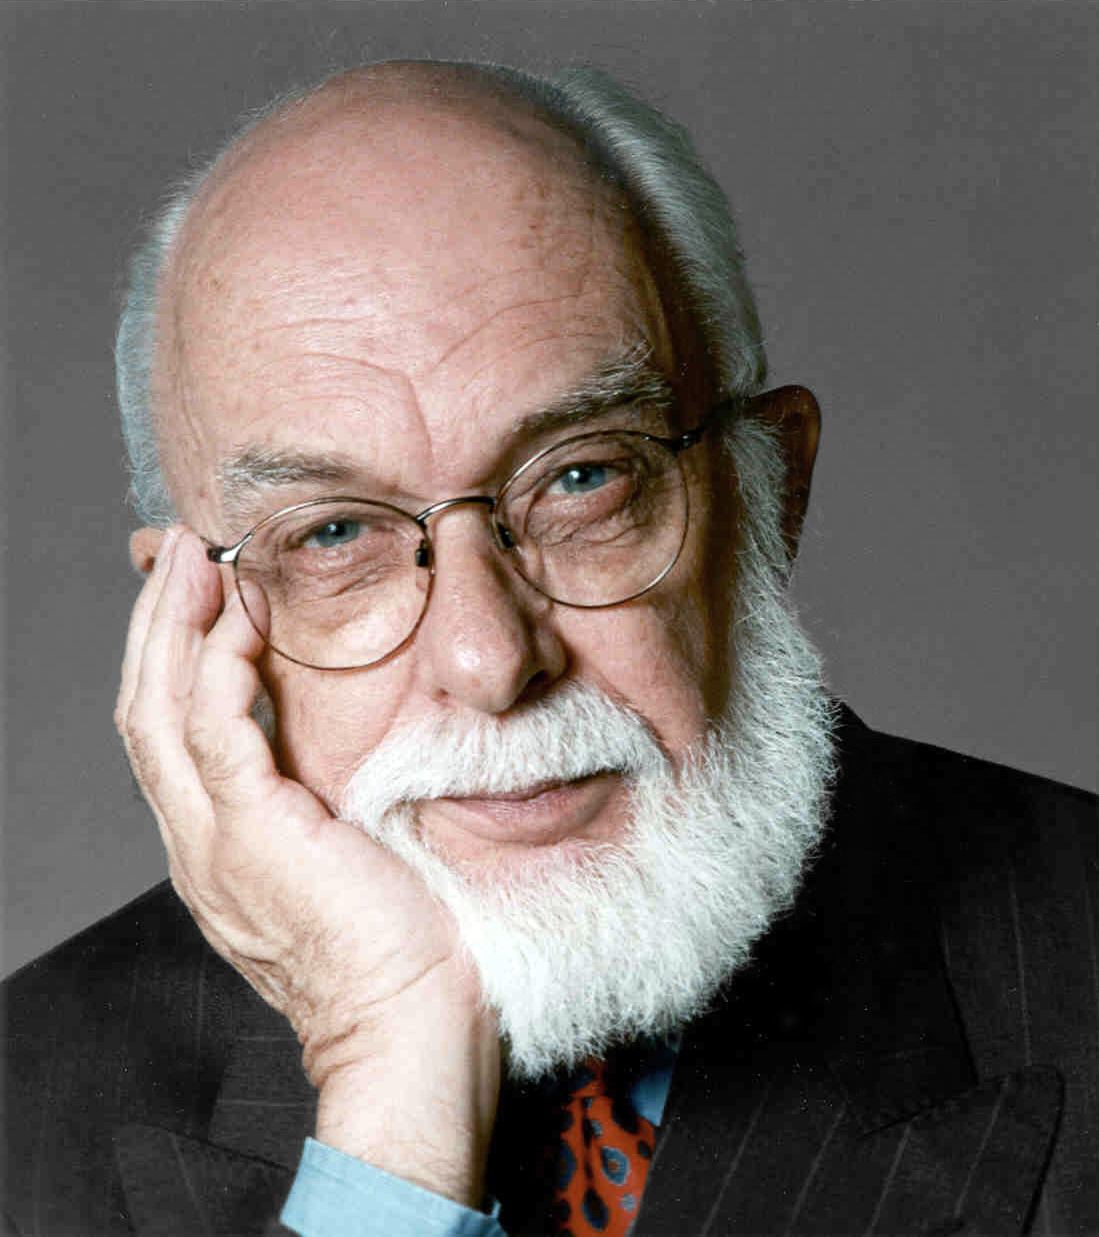 en:Image:RANDI.jpg (Original text : James Randi)